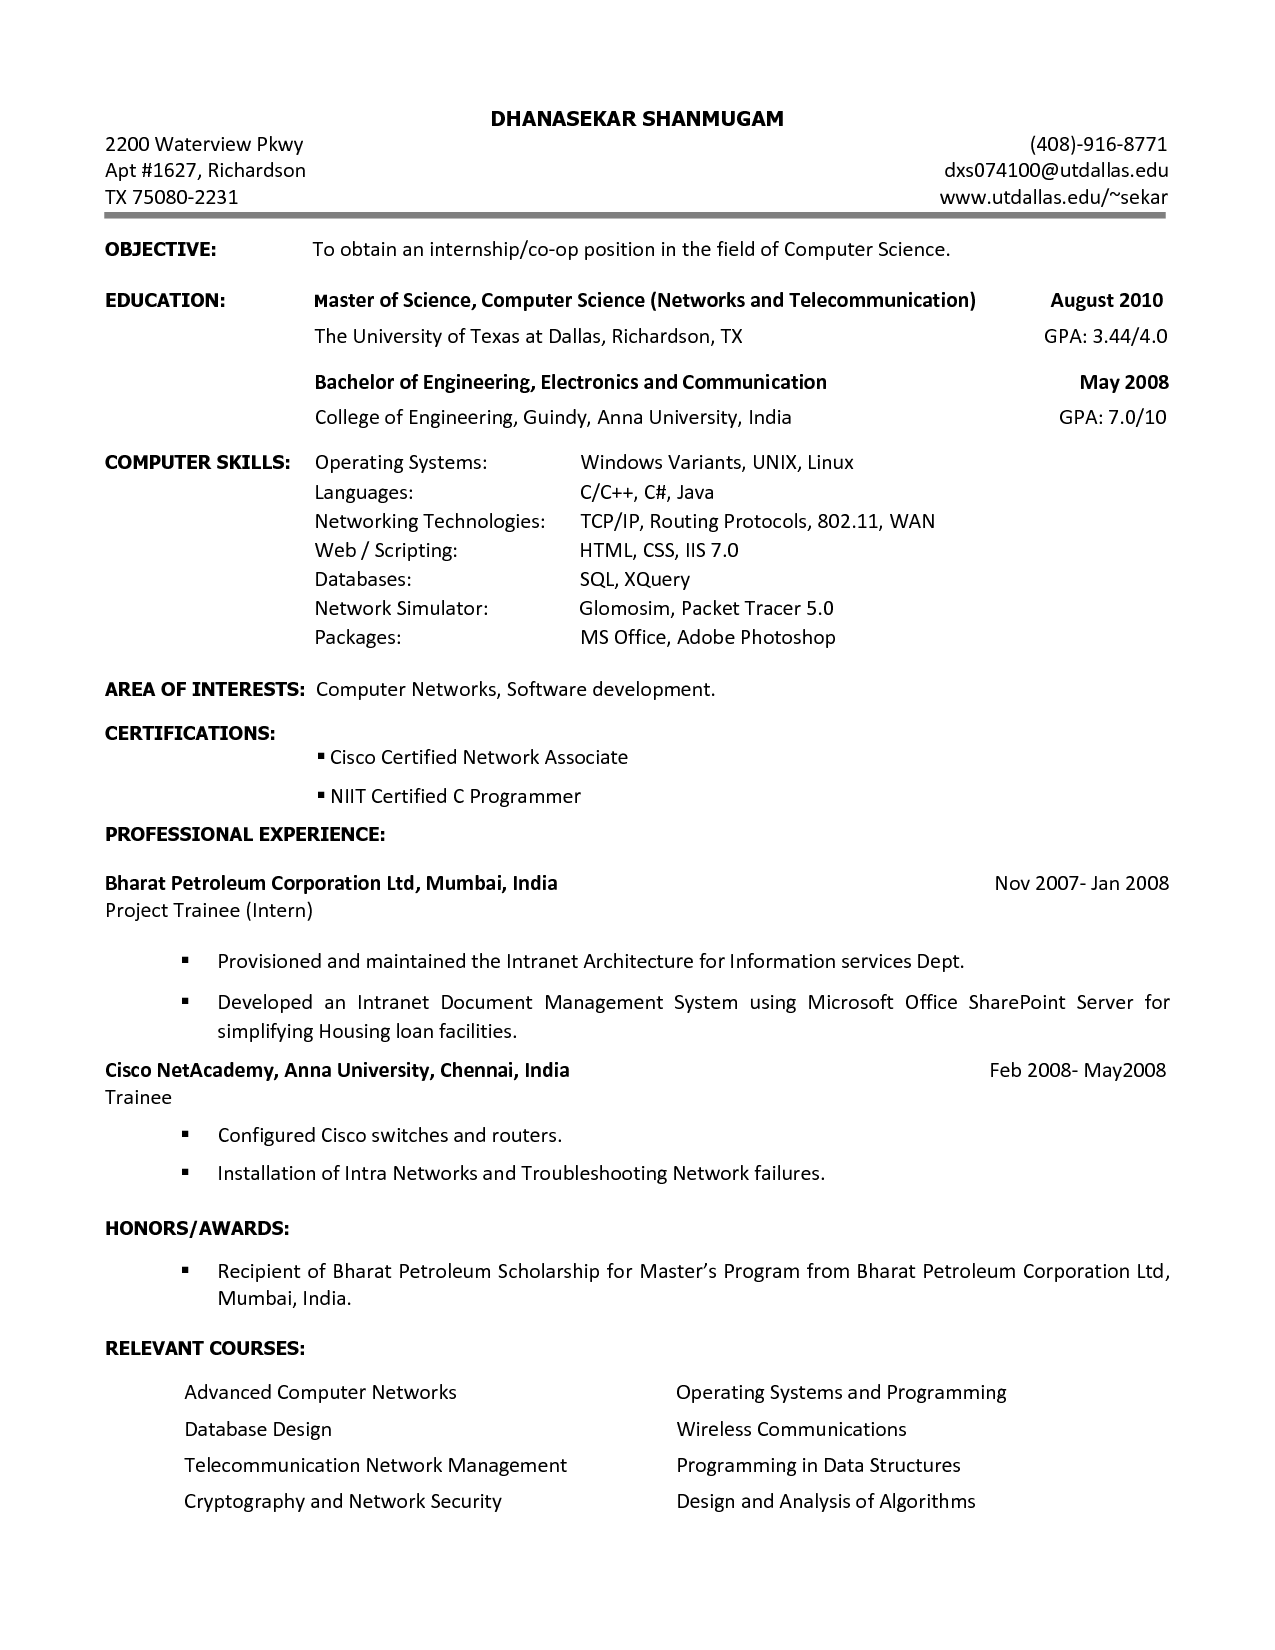 Resume Builder Resume Builder Free Download, free resume builder ...